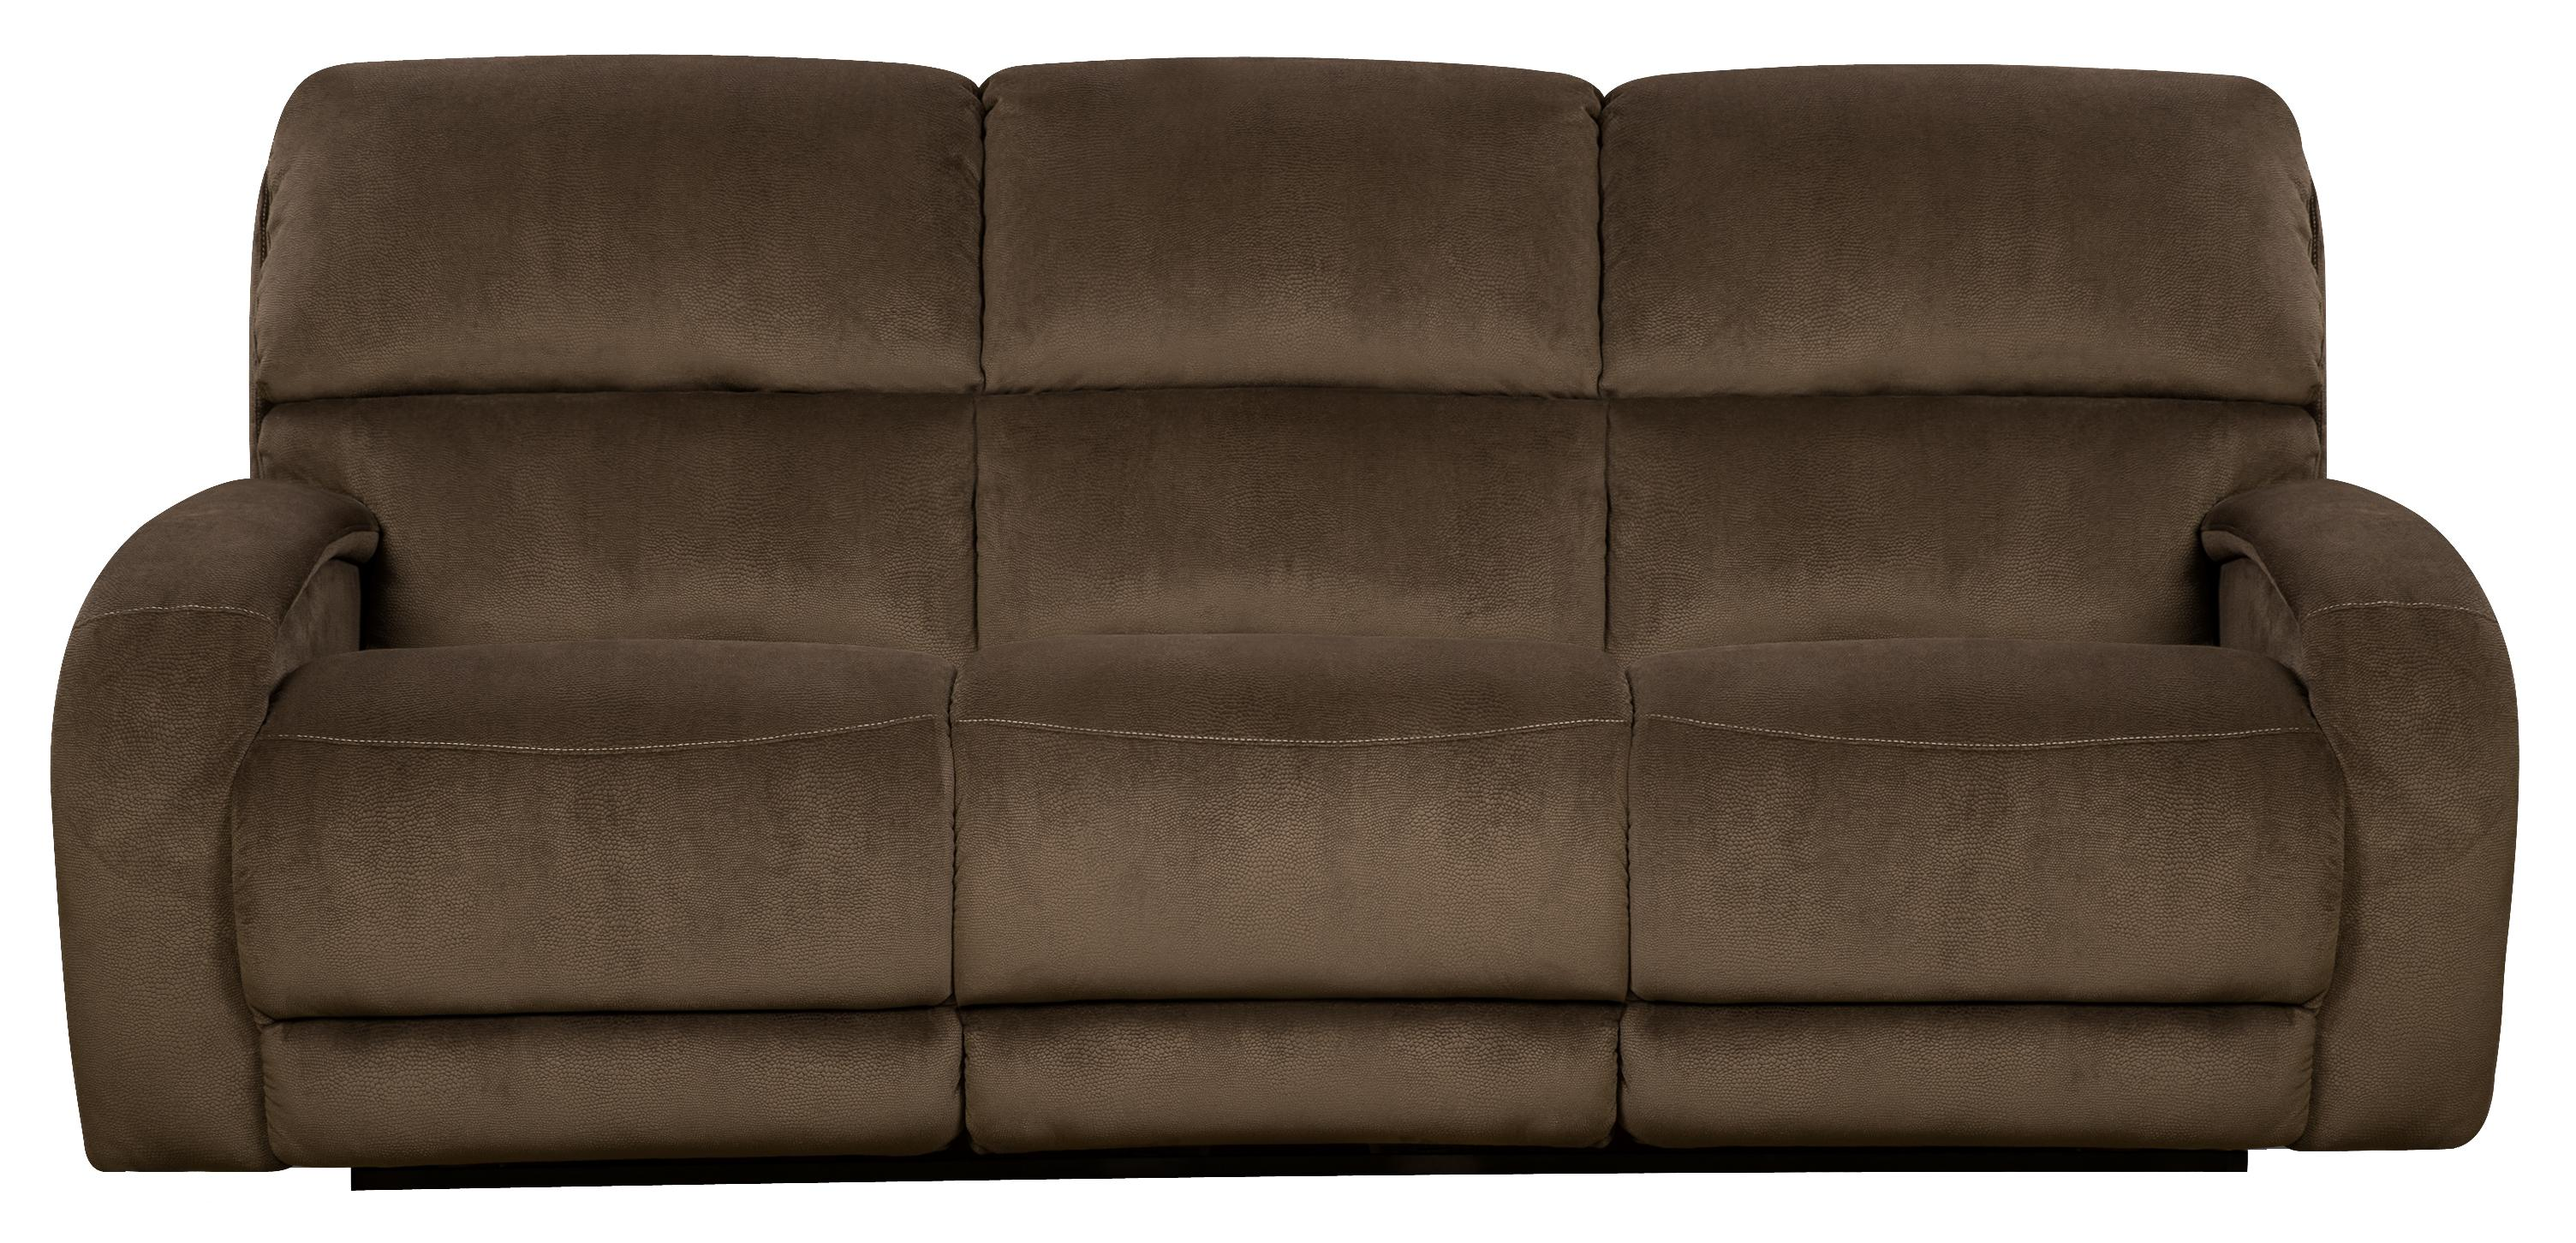 Fandango Reclining Sofa by Southern Motion at Darvin Furniture